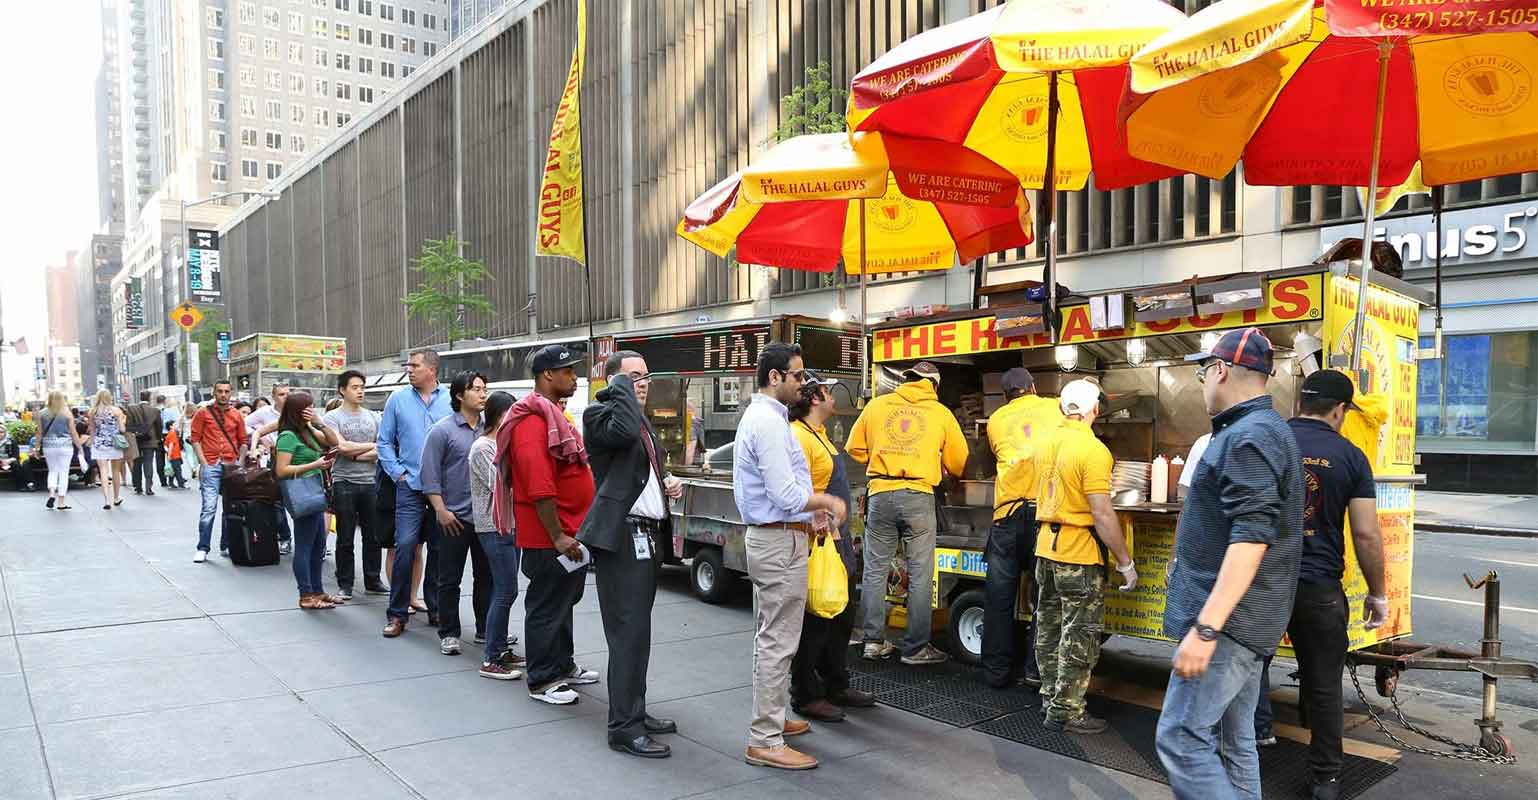 Image courtesy of  The Halal Guys' Instagram